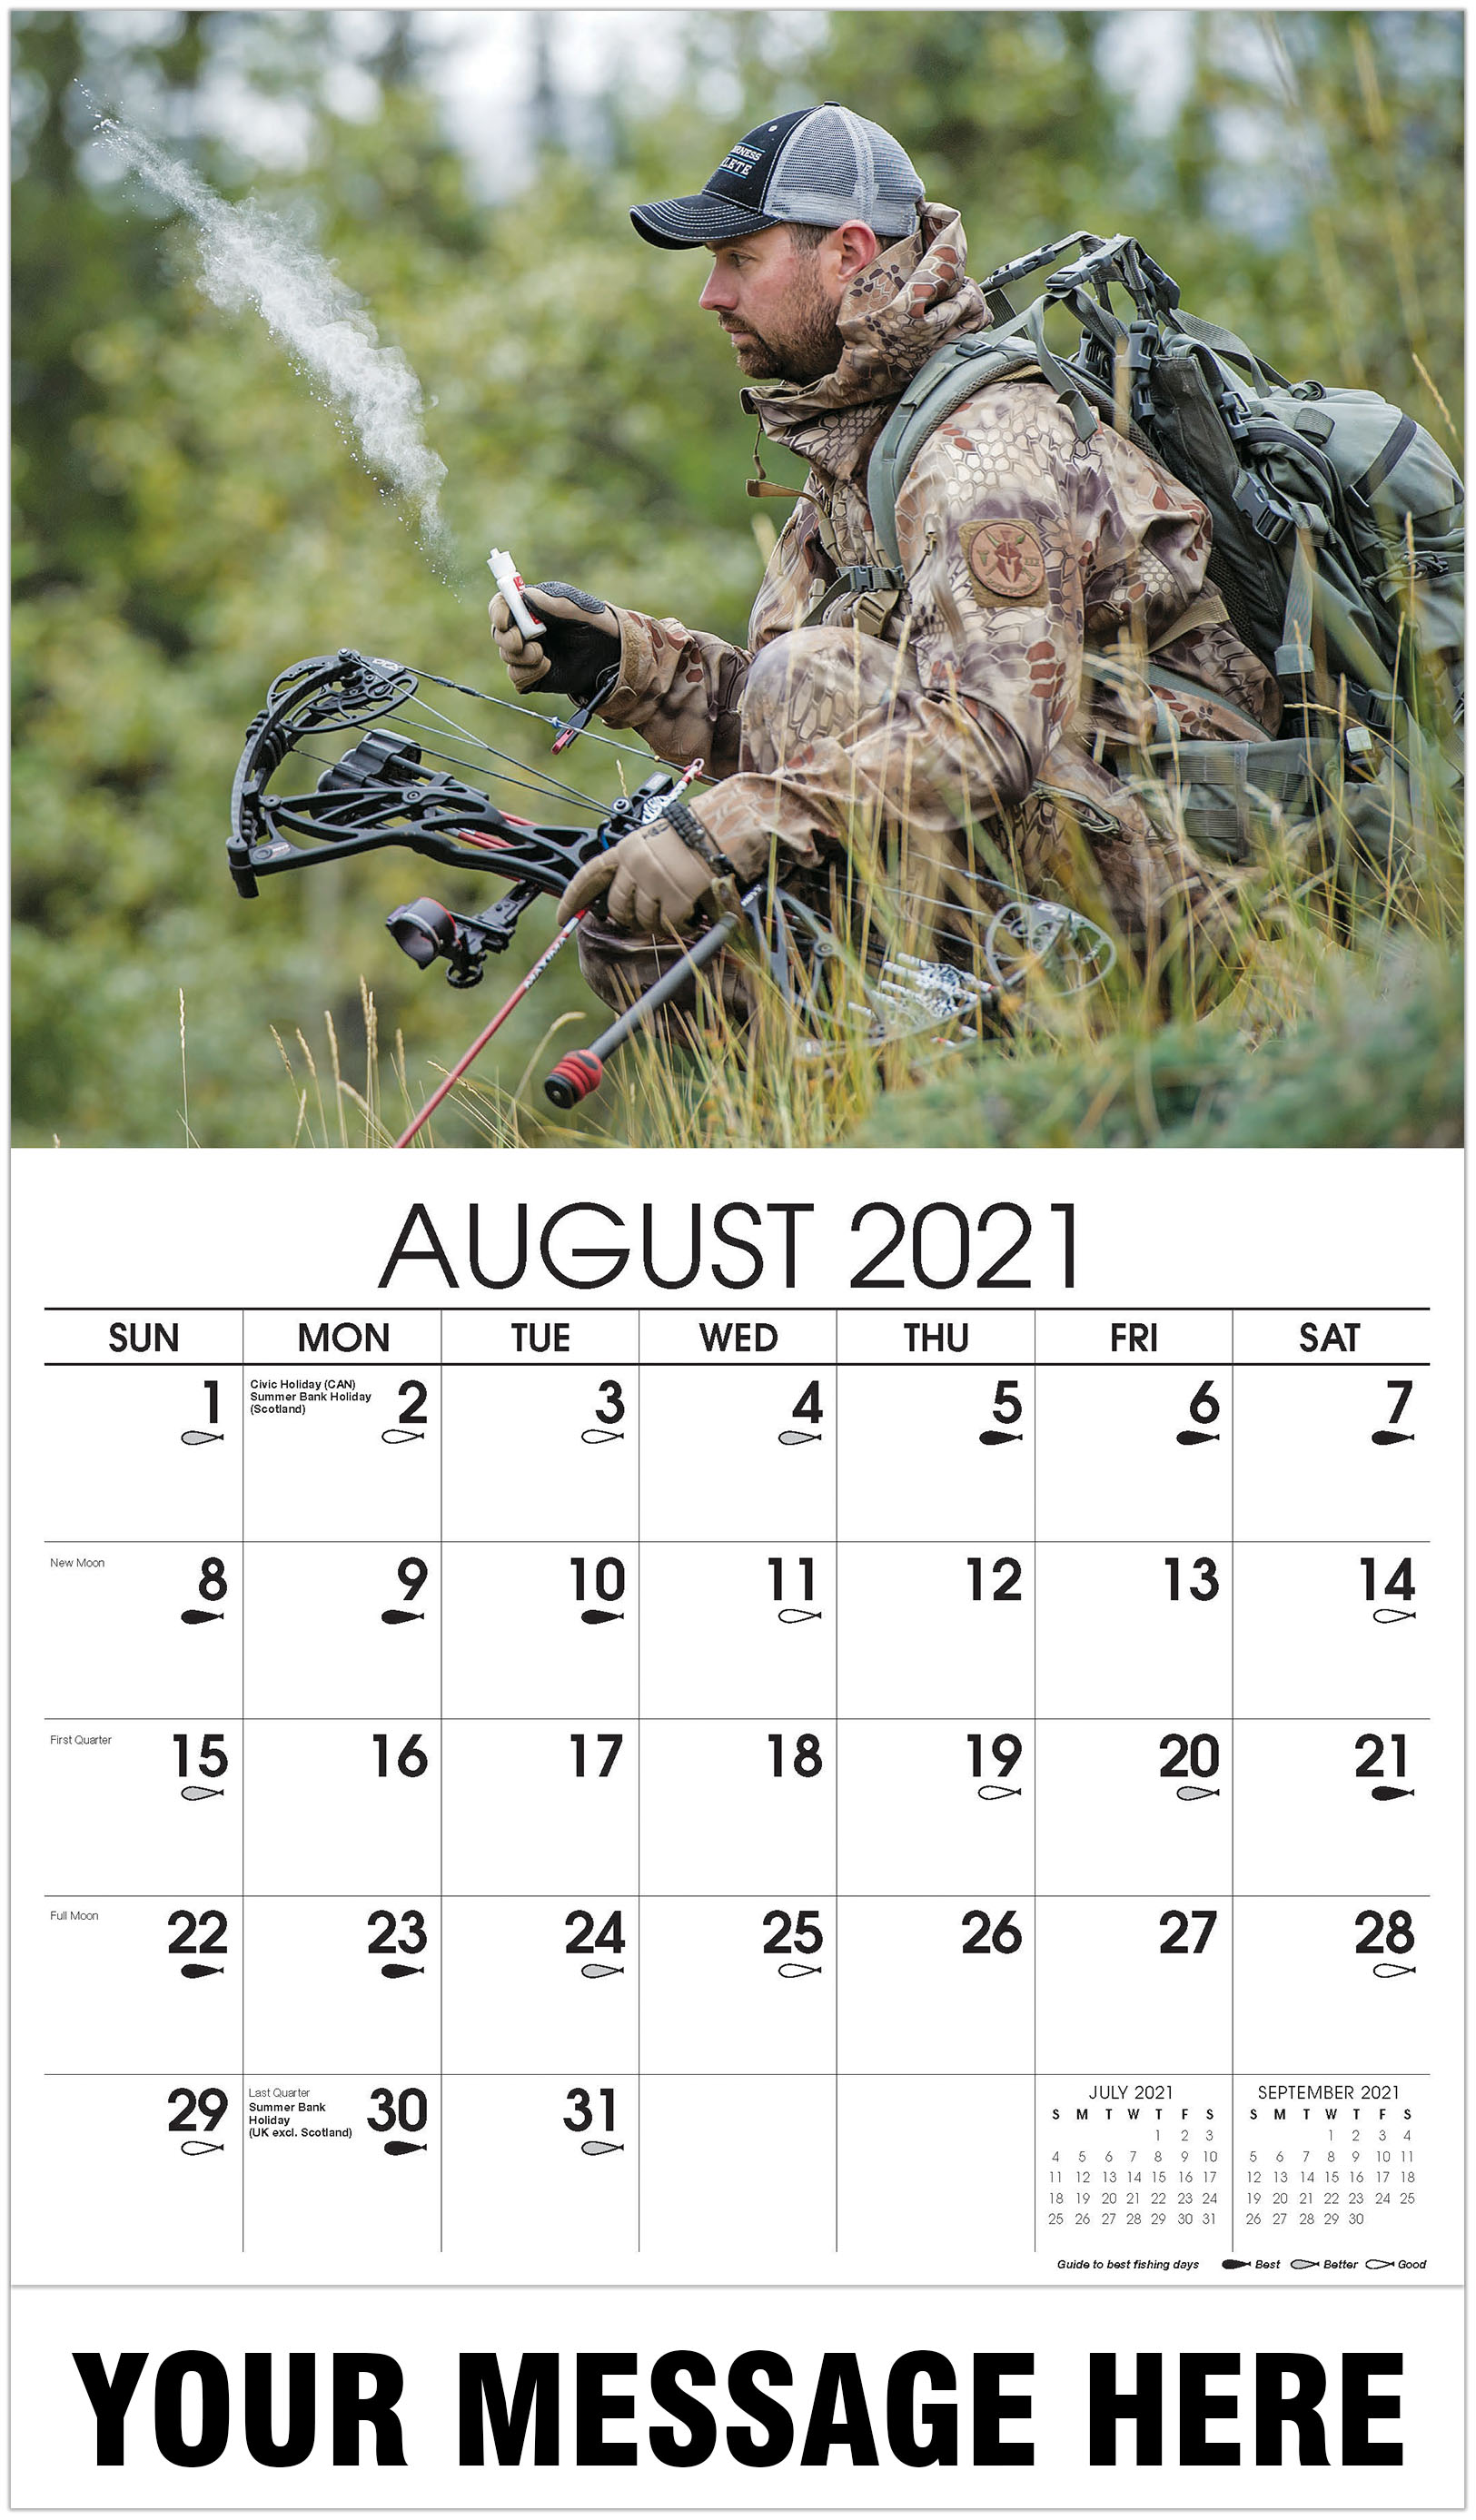 Hunter with bow and arrow - August - Fishing & Hunting 2021 Promotional Calendar